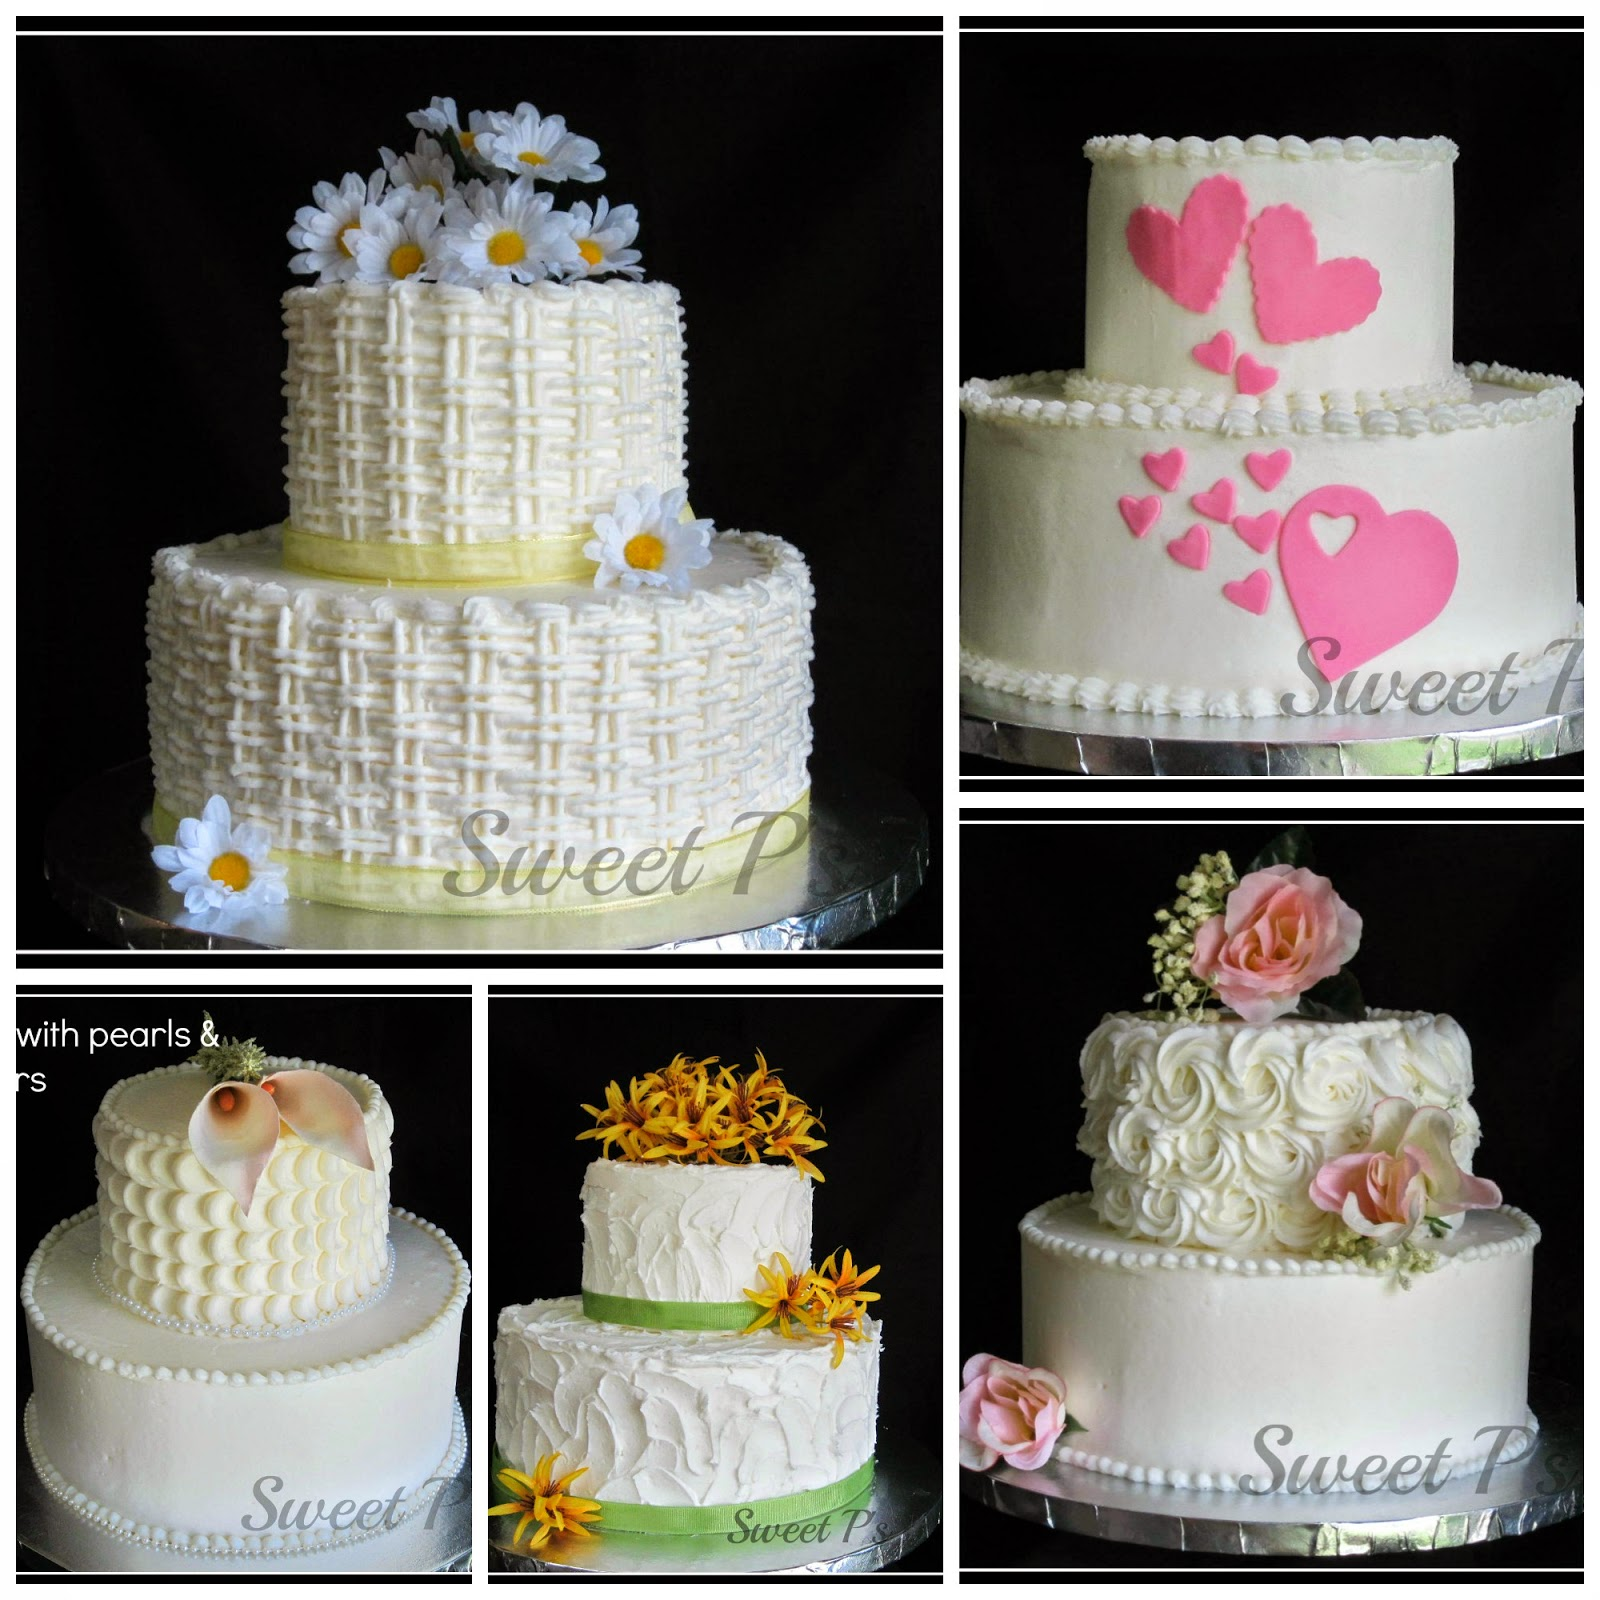 Wedding Cake Options for Brides on a Tight Budget Sweet Ps Cake